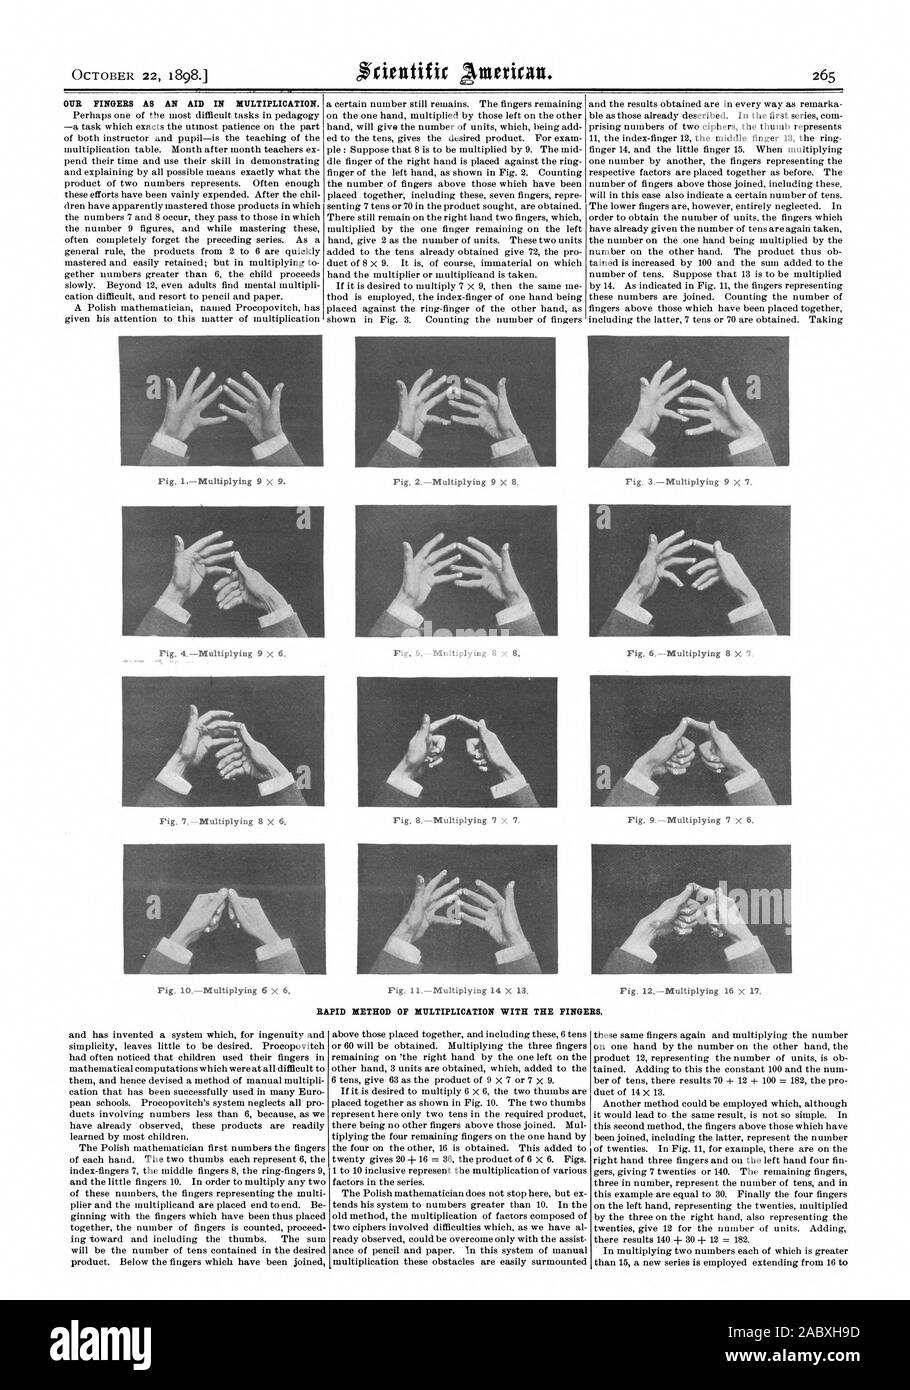 OCTOBER 22 1898. OUR FINGERS AS AN AID IN MULTIPLICATION. Fig. 1Multiplying 9 X 9. Fig 2Multiplying 9 X 8. Fig 8Multiplying 7 X 7. Fig. 12Multiplying 16 x 17 Fig. 6Multiplying 8 X '7. RAPID METHOD OF MULTIPLICATION WITH THE FINGERS., scientific american, 1898-10-22 Stock Photo